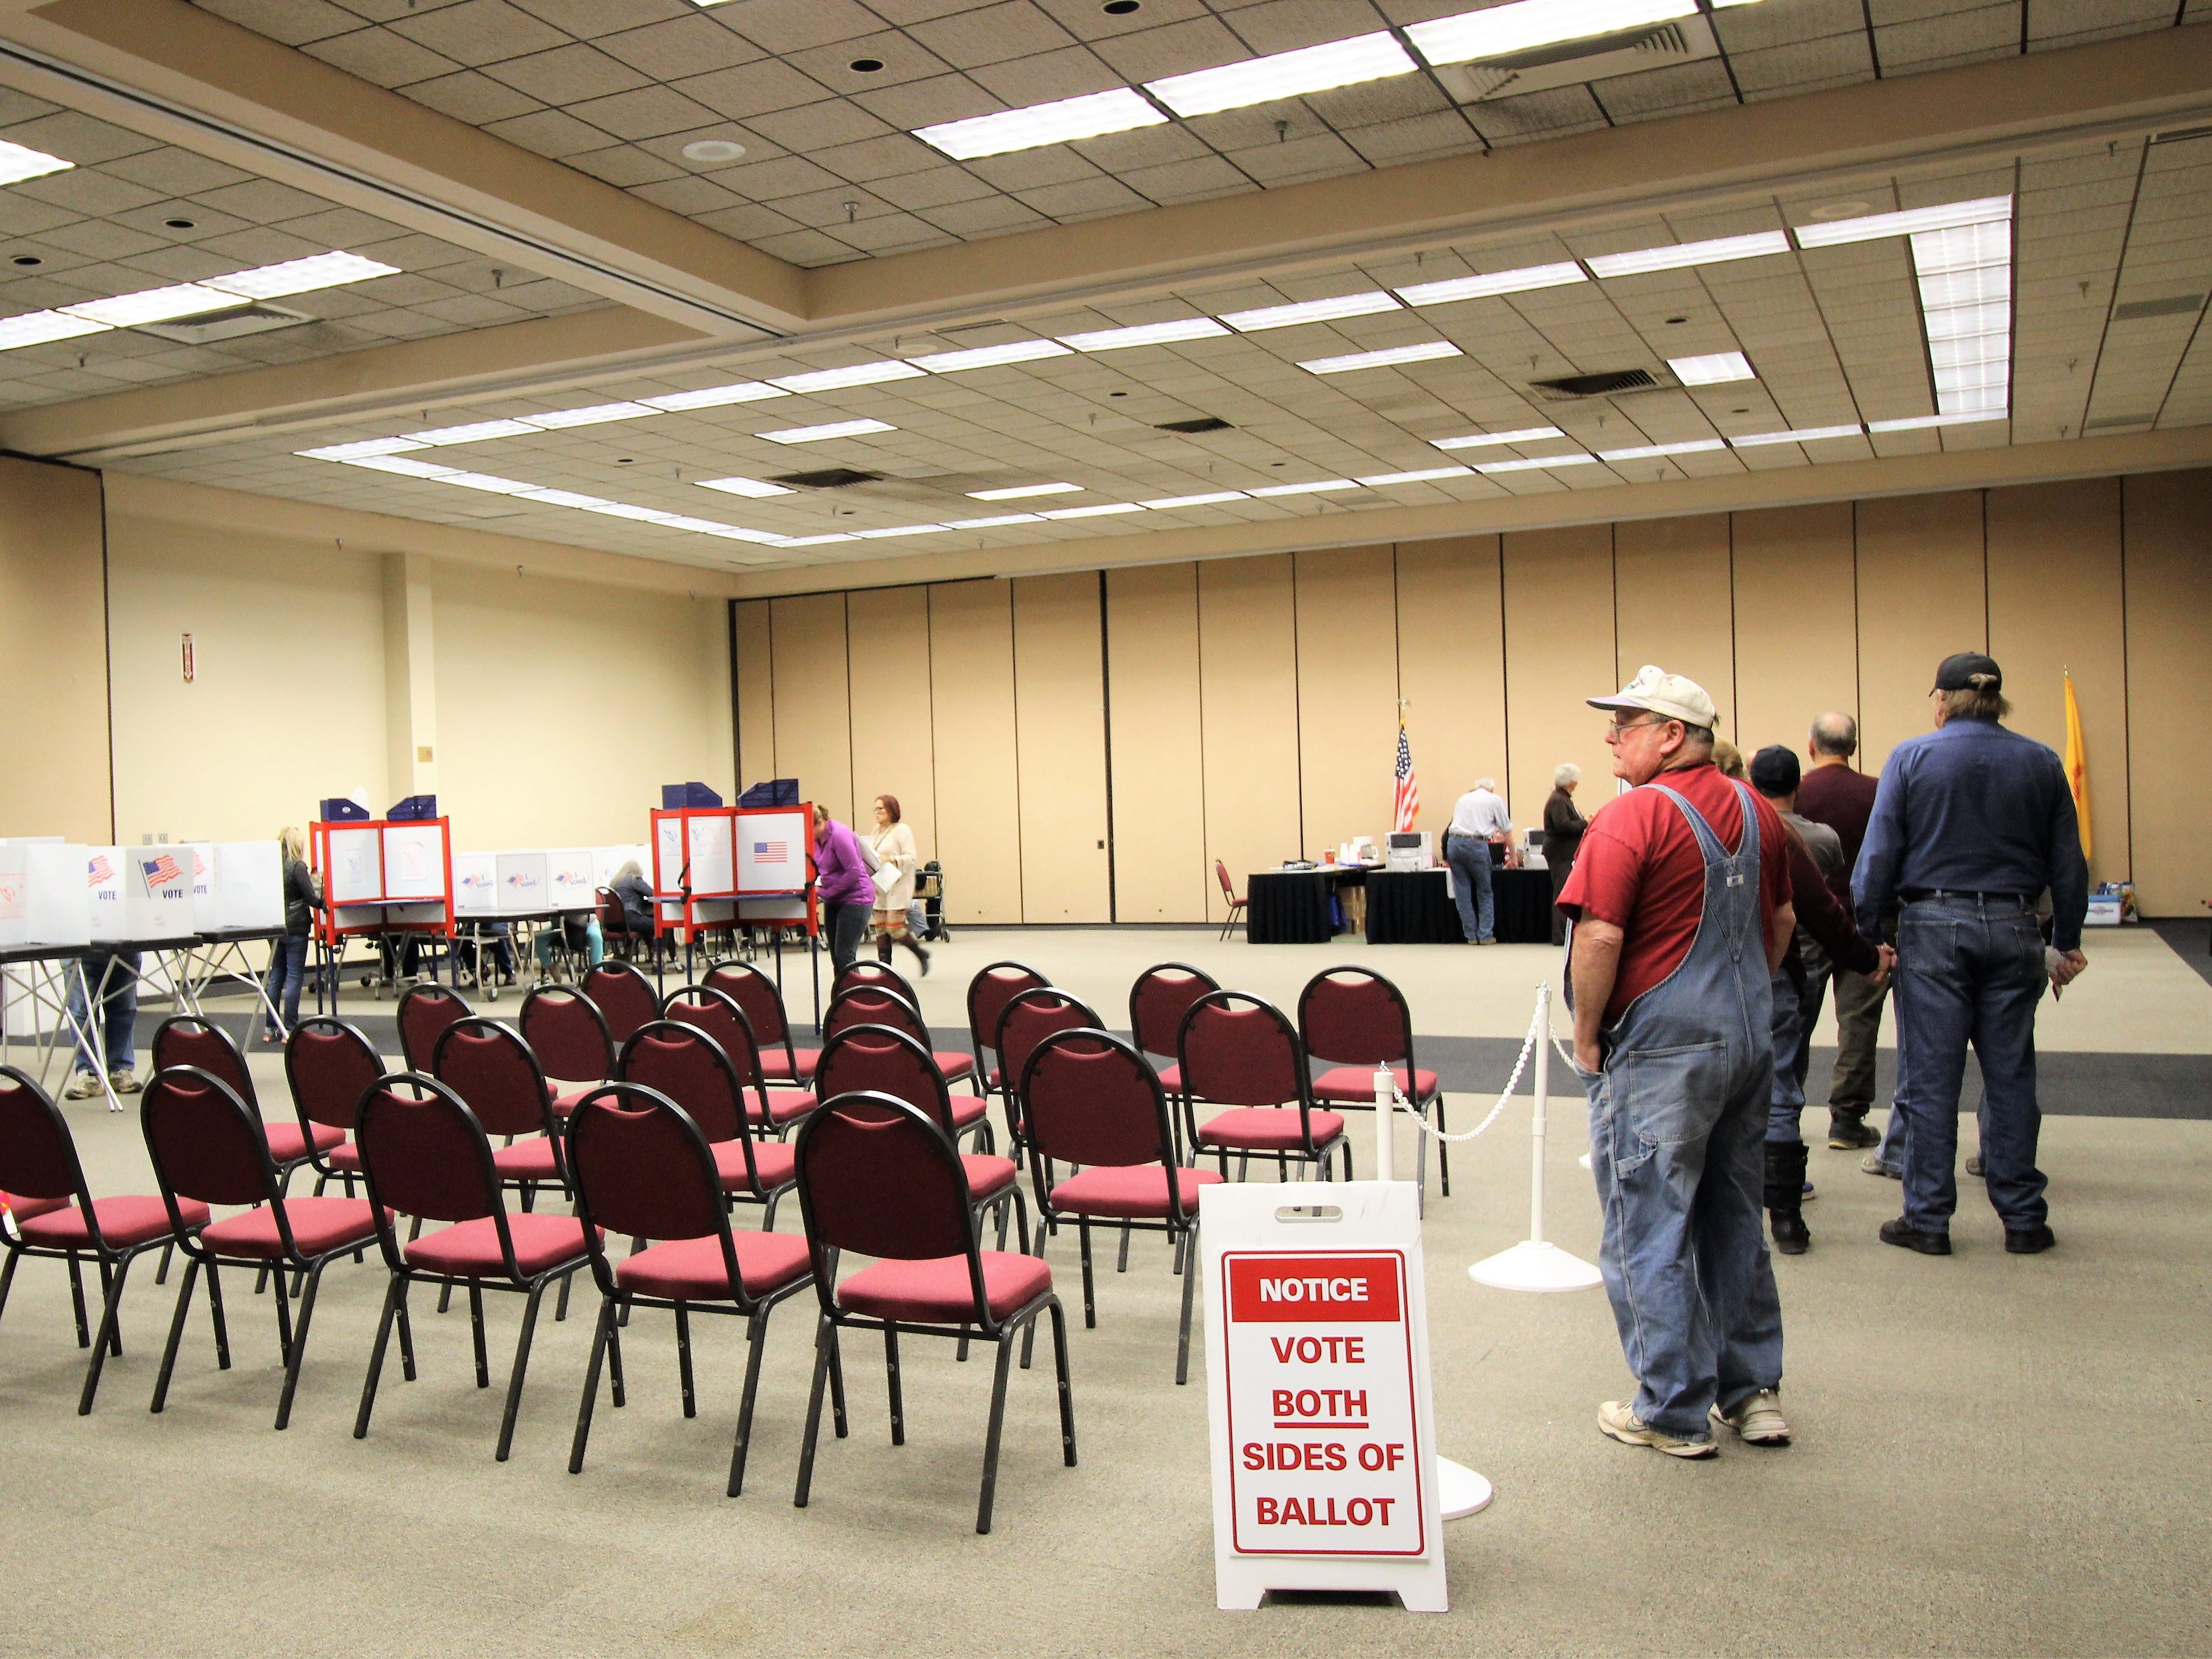 Lincoln County voters beat turnout for last midterm by about 15 percentage points